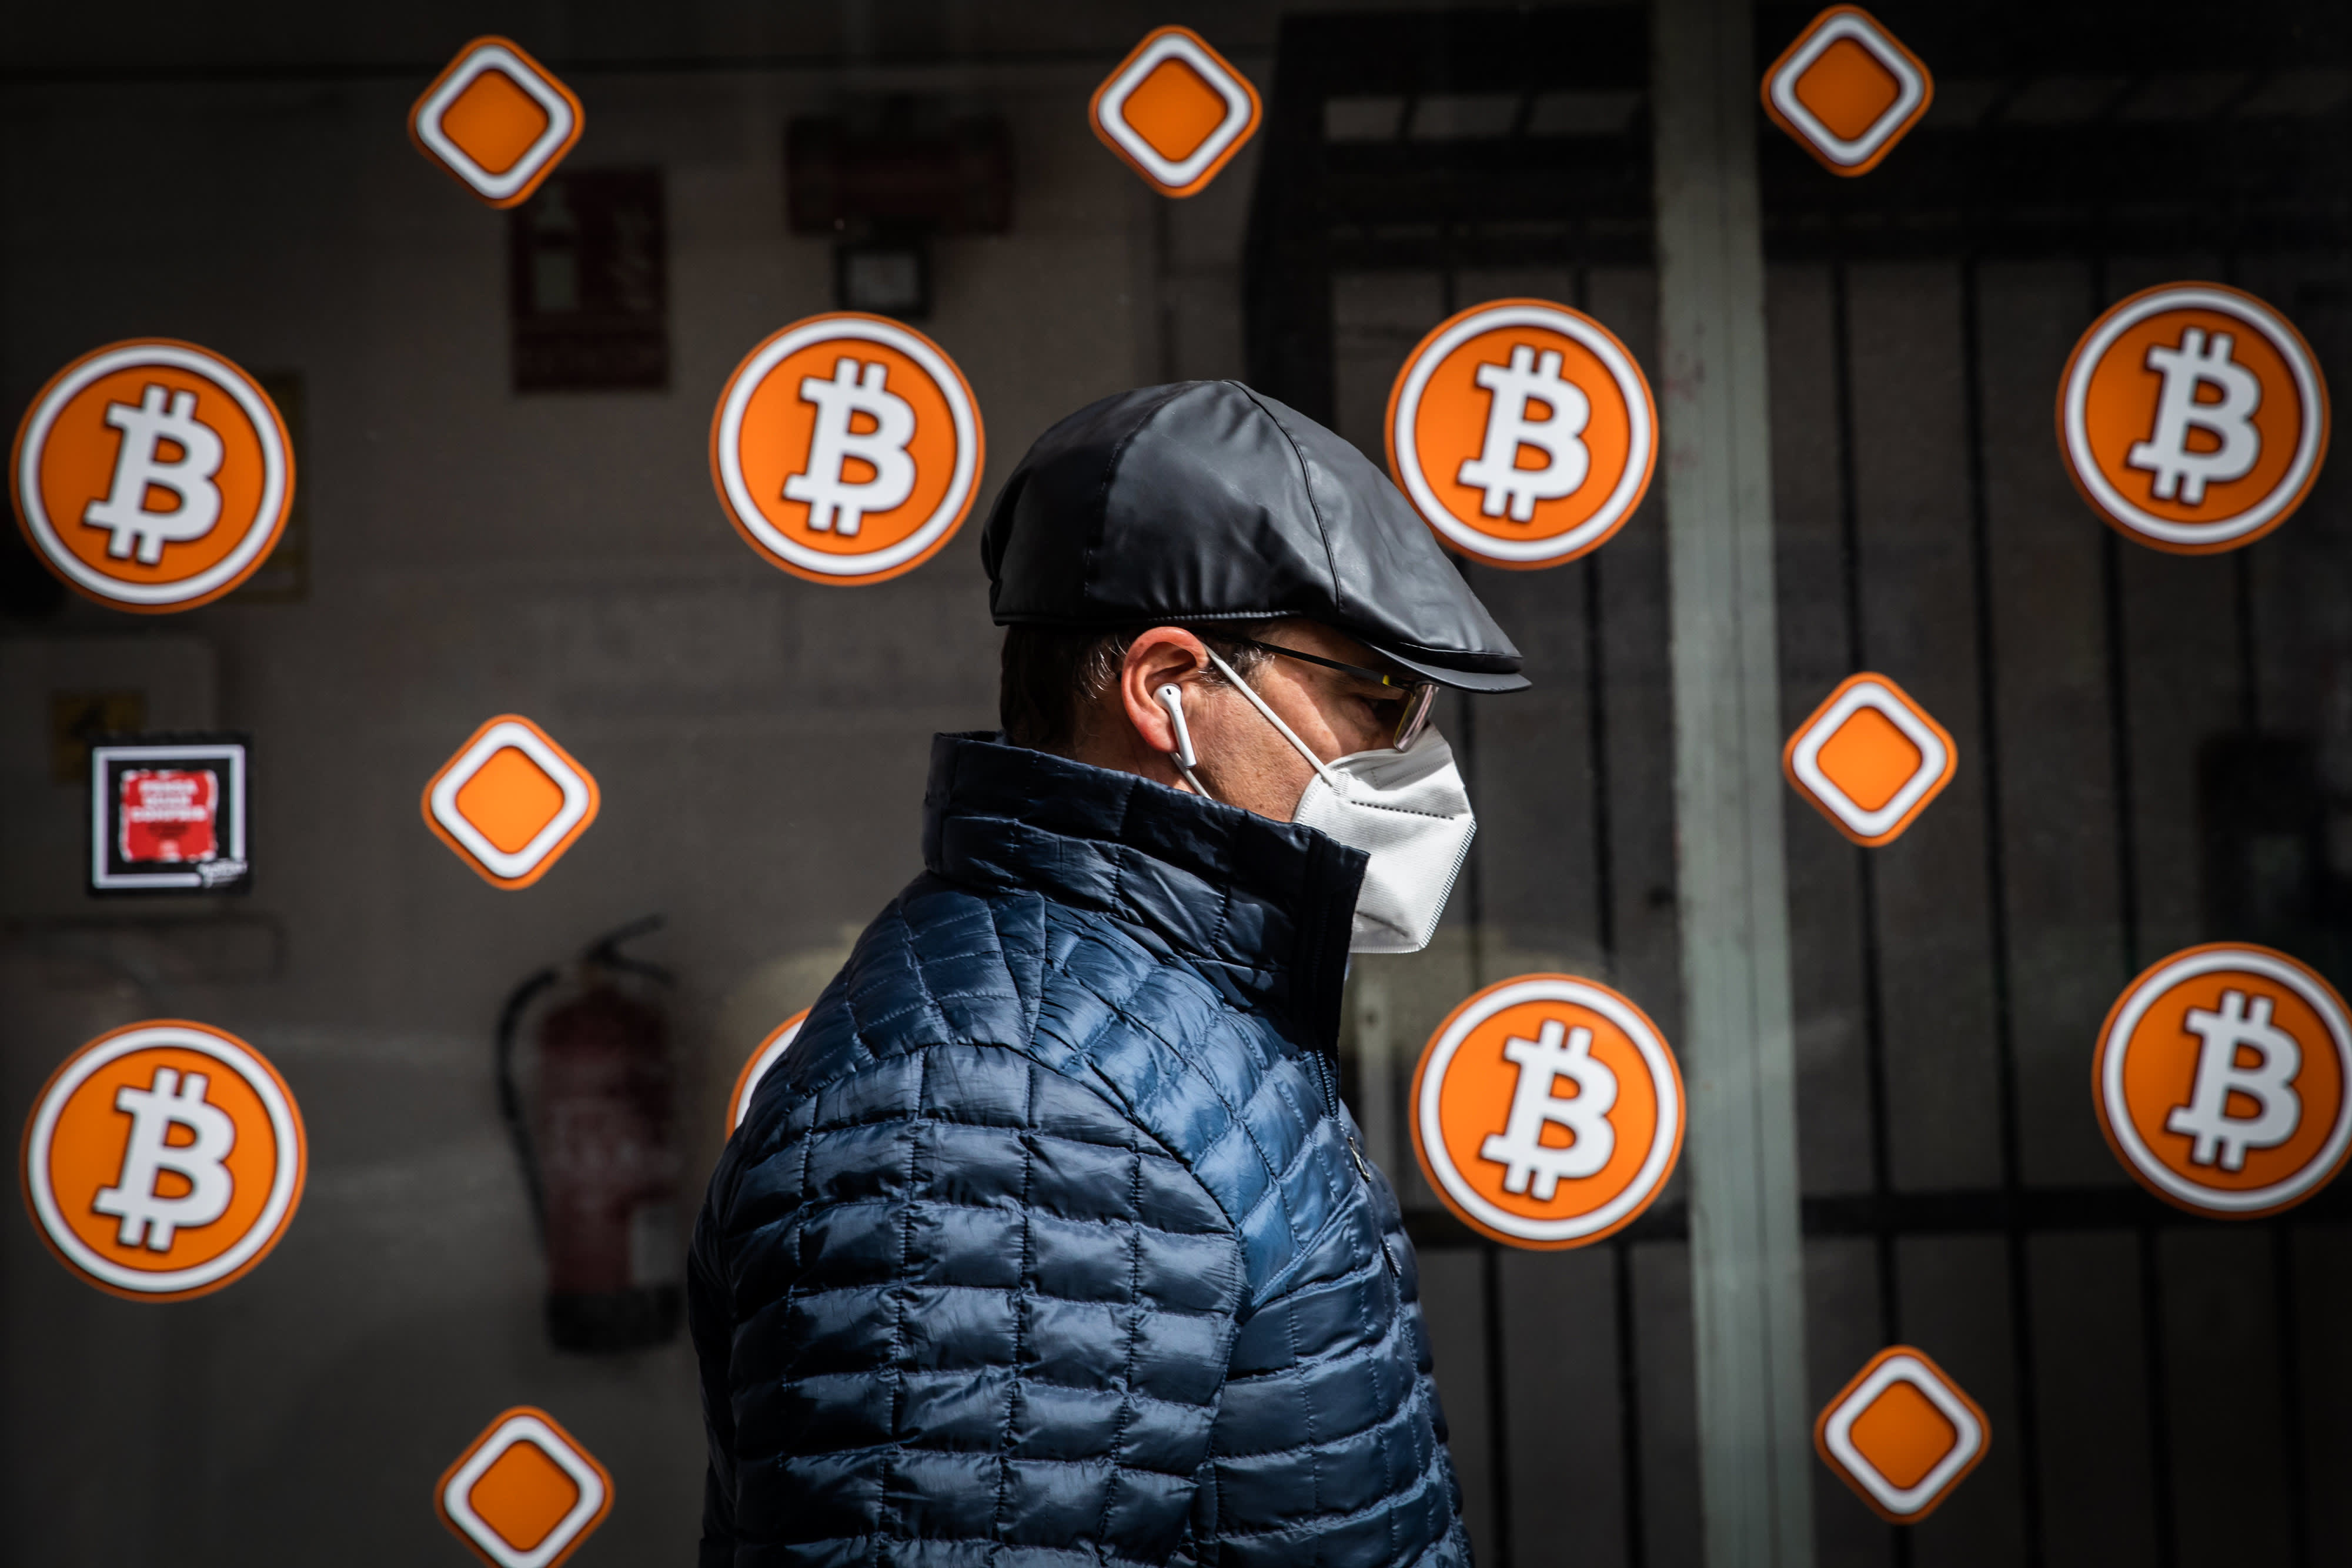 Square Saw 1 Million Users Buy Bitcoin for First Time During January's Upswing, CFO Says – NBC Connecticut